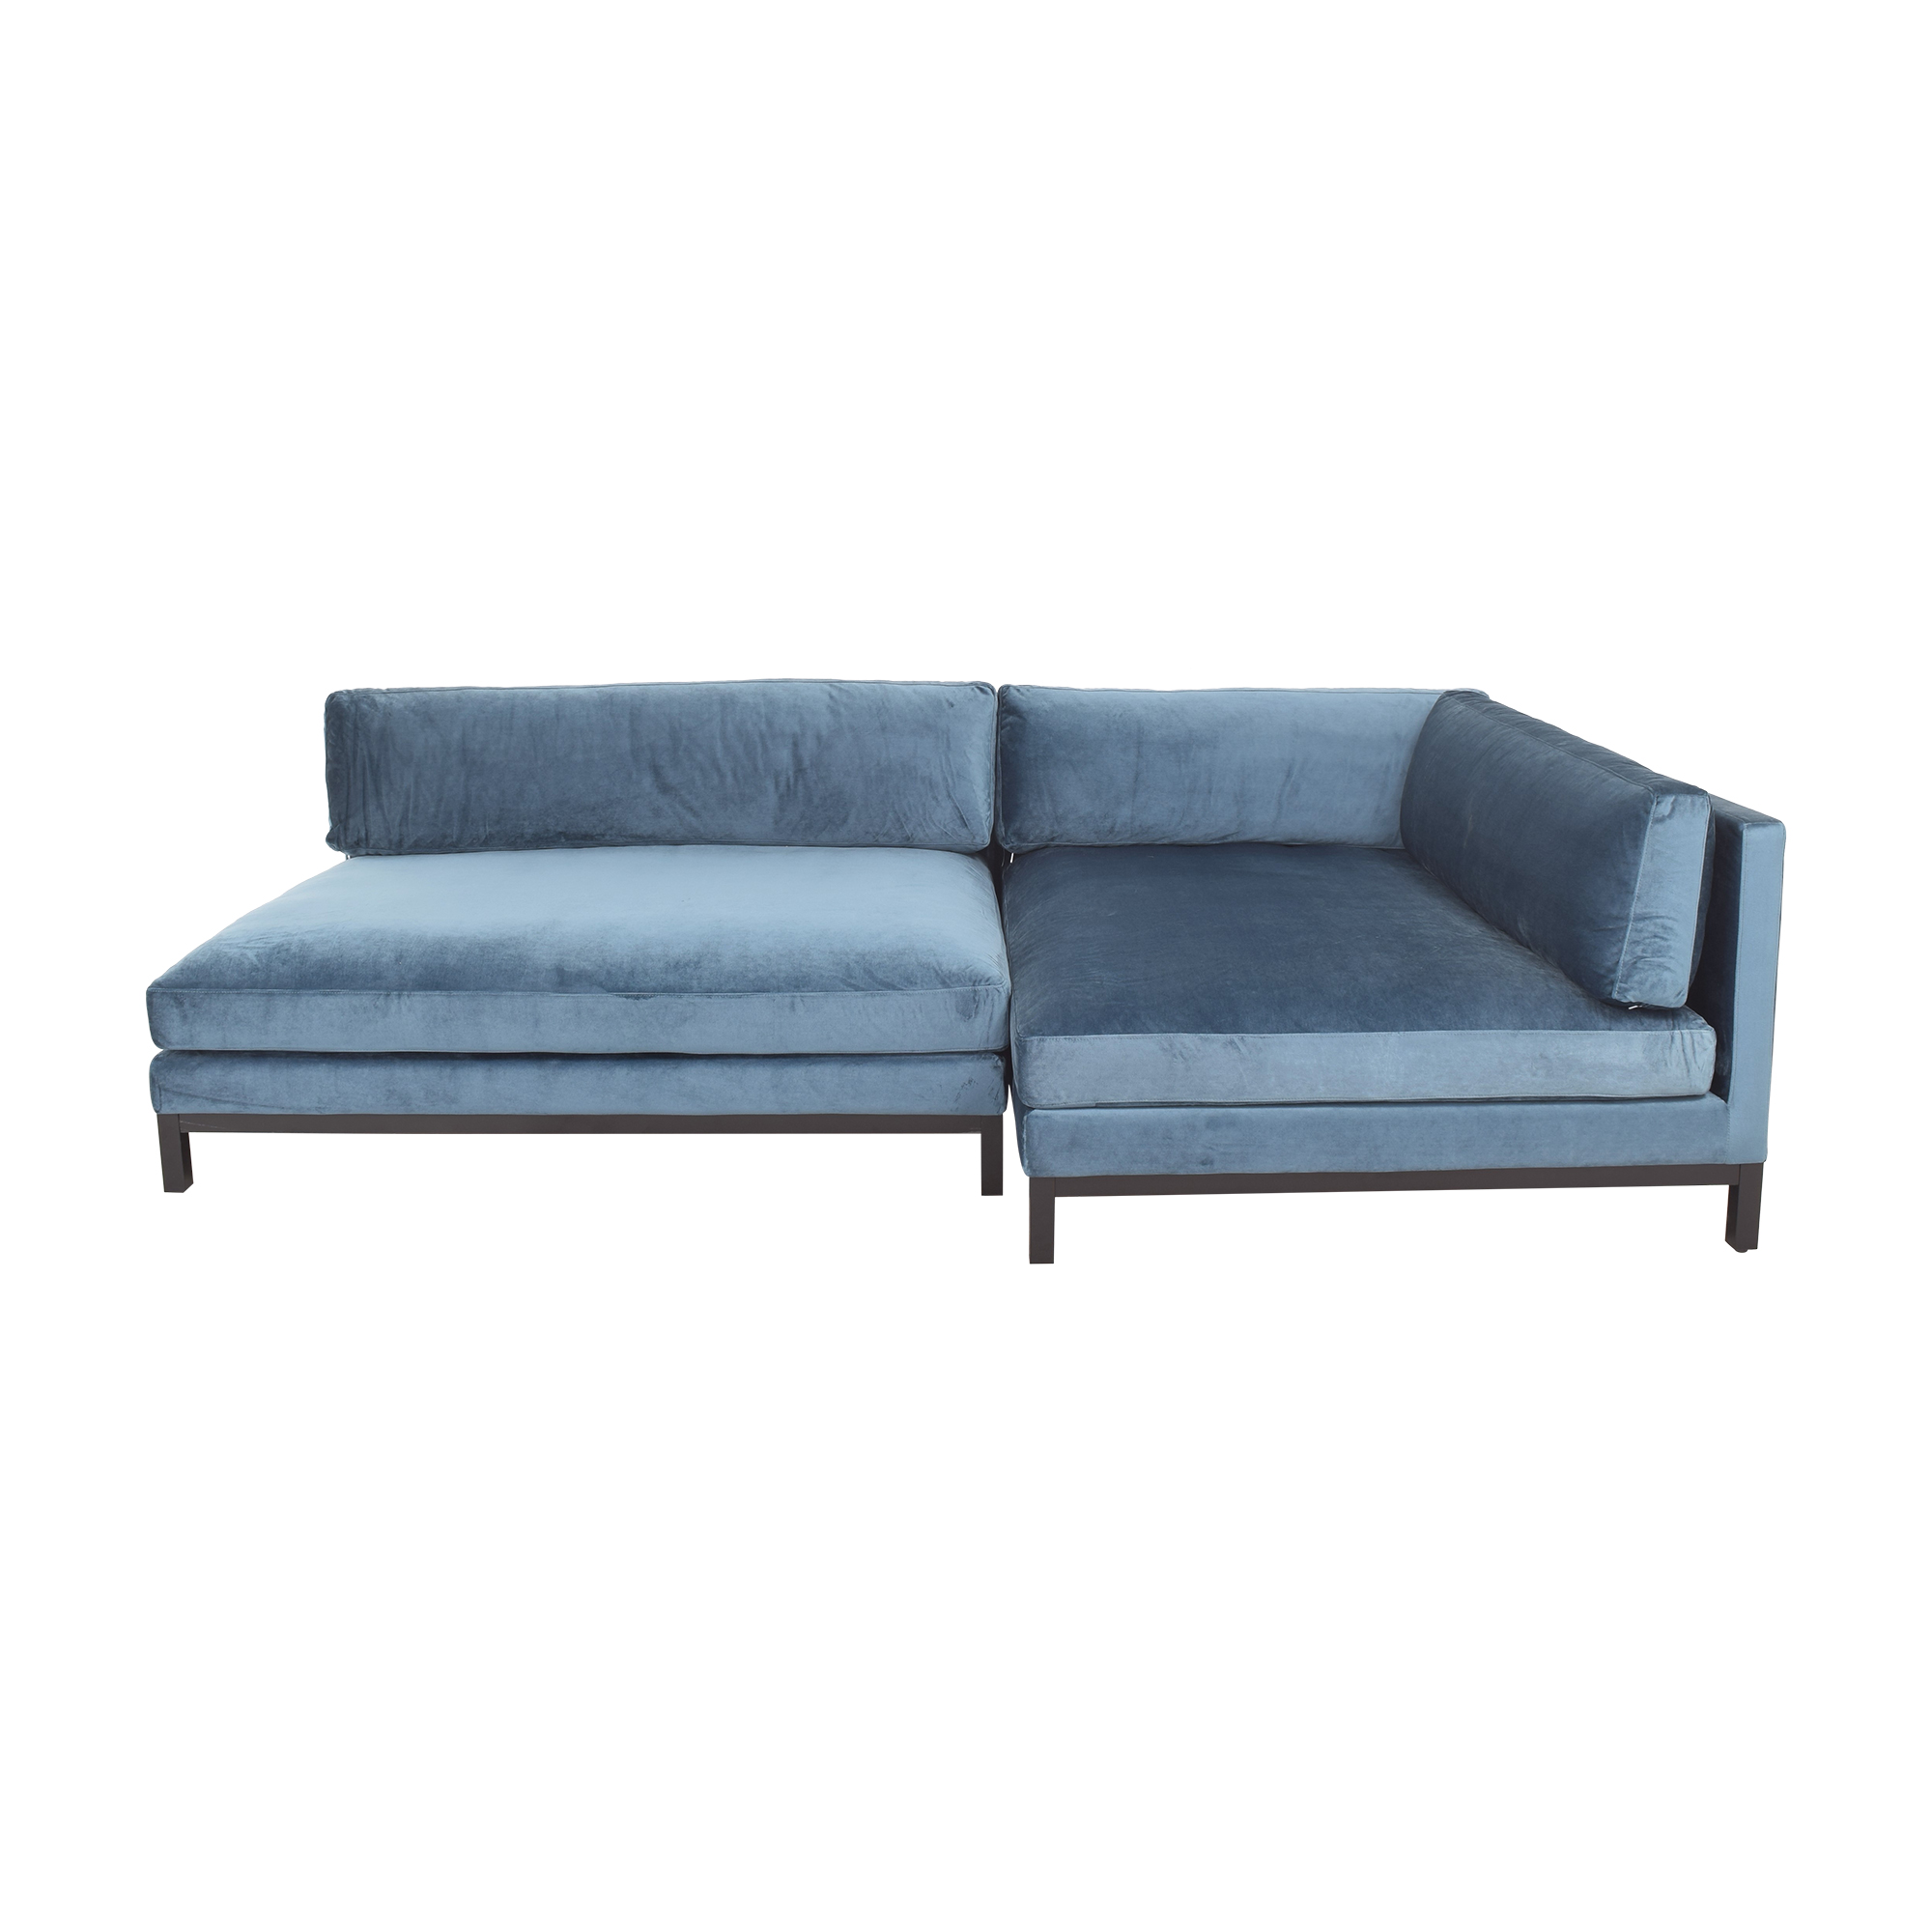 Interior Define Interior Define Jasper Chaise Sectional Sofa nj